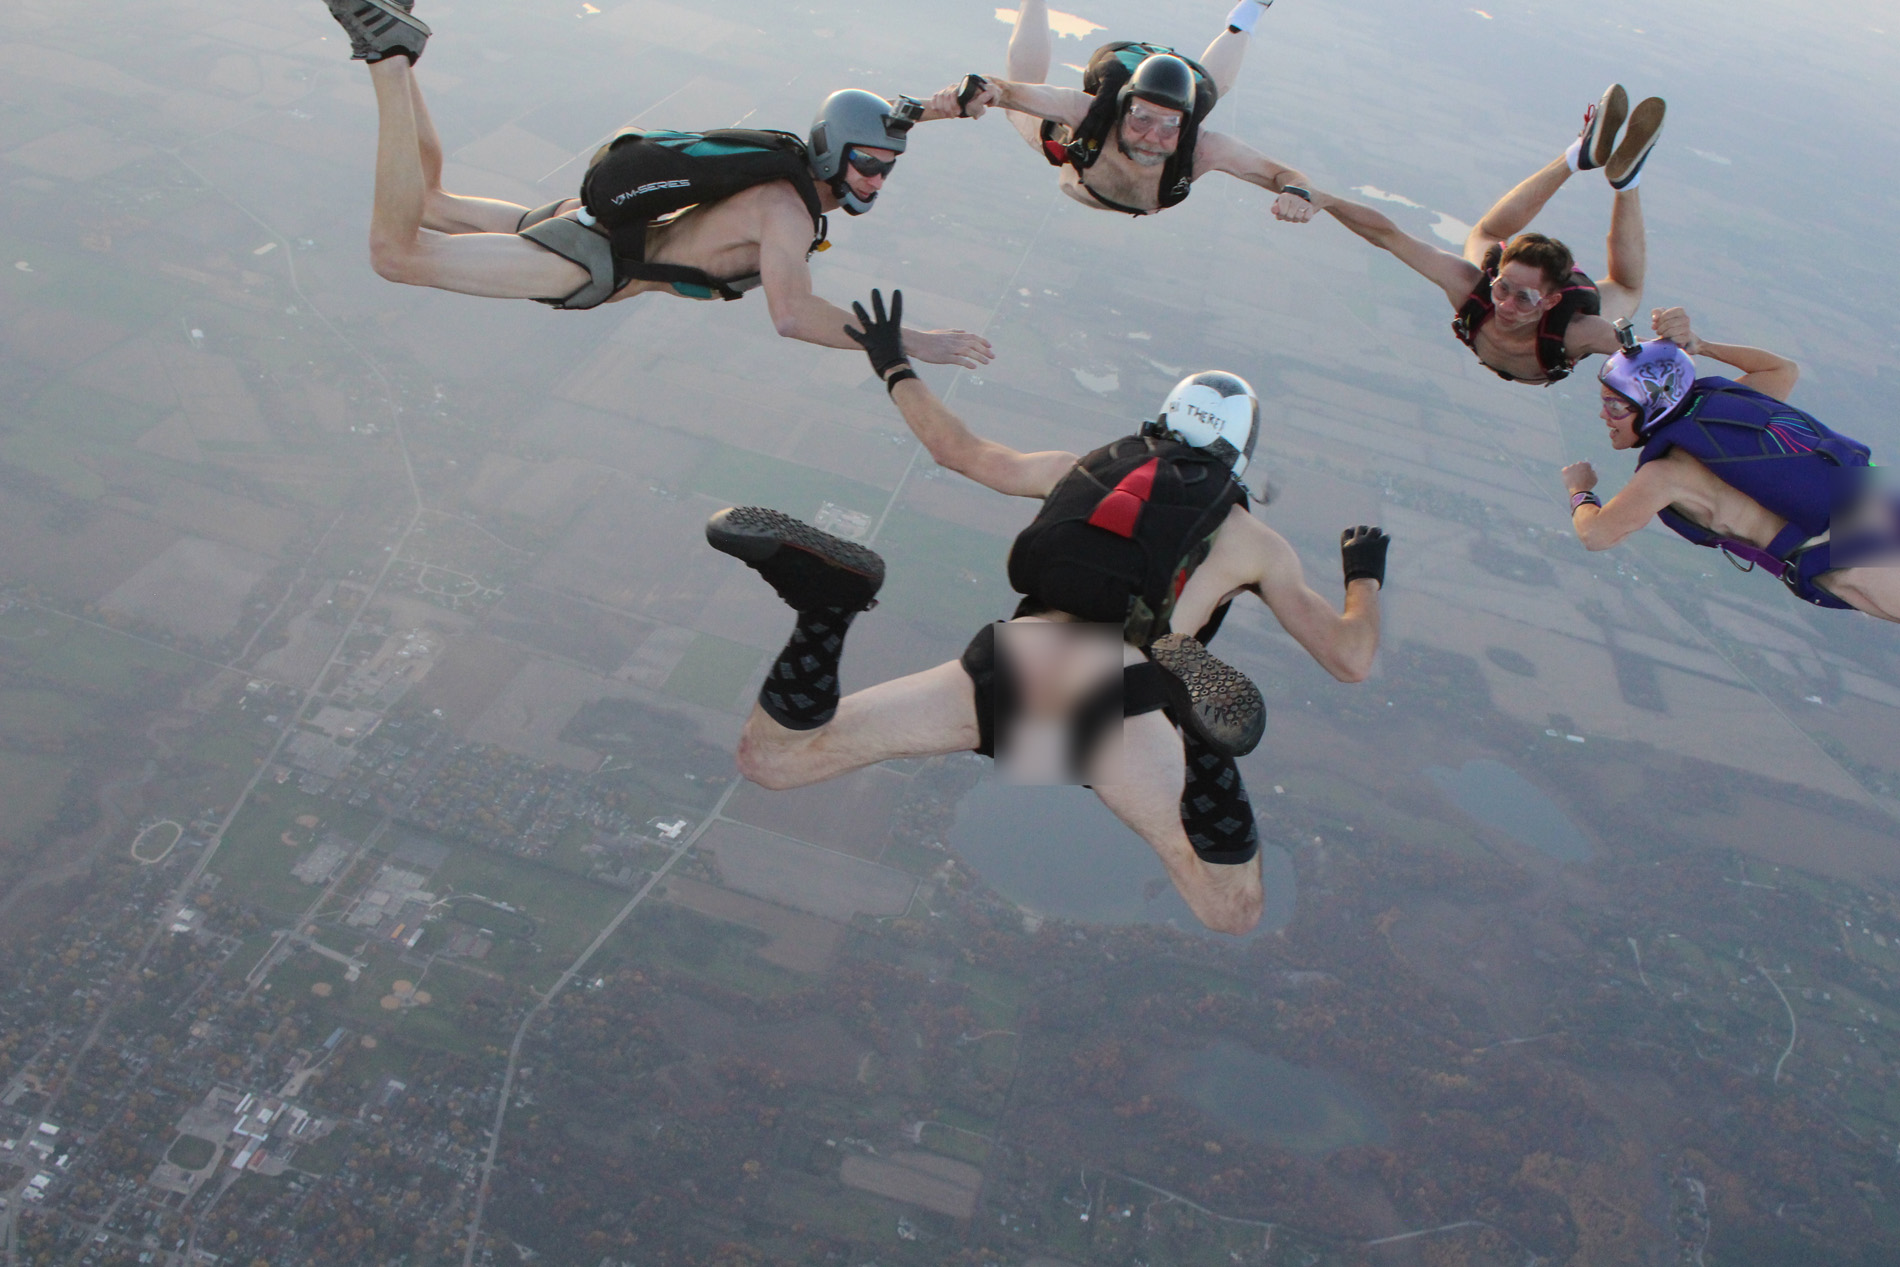 Nude skydiving pic